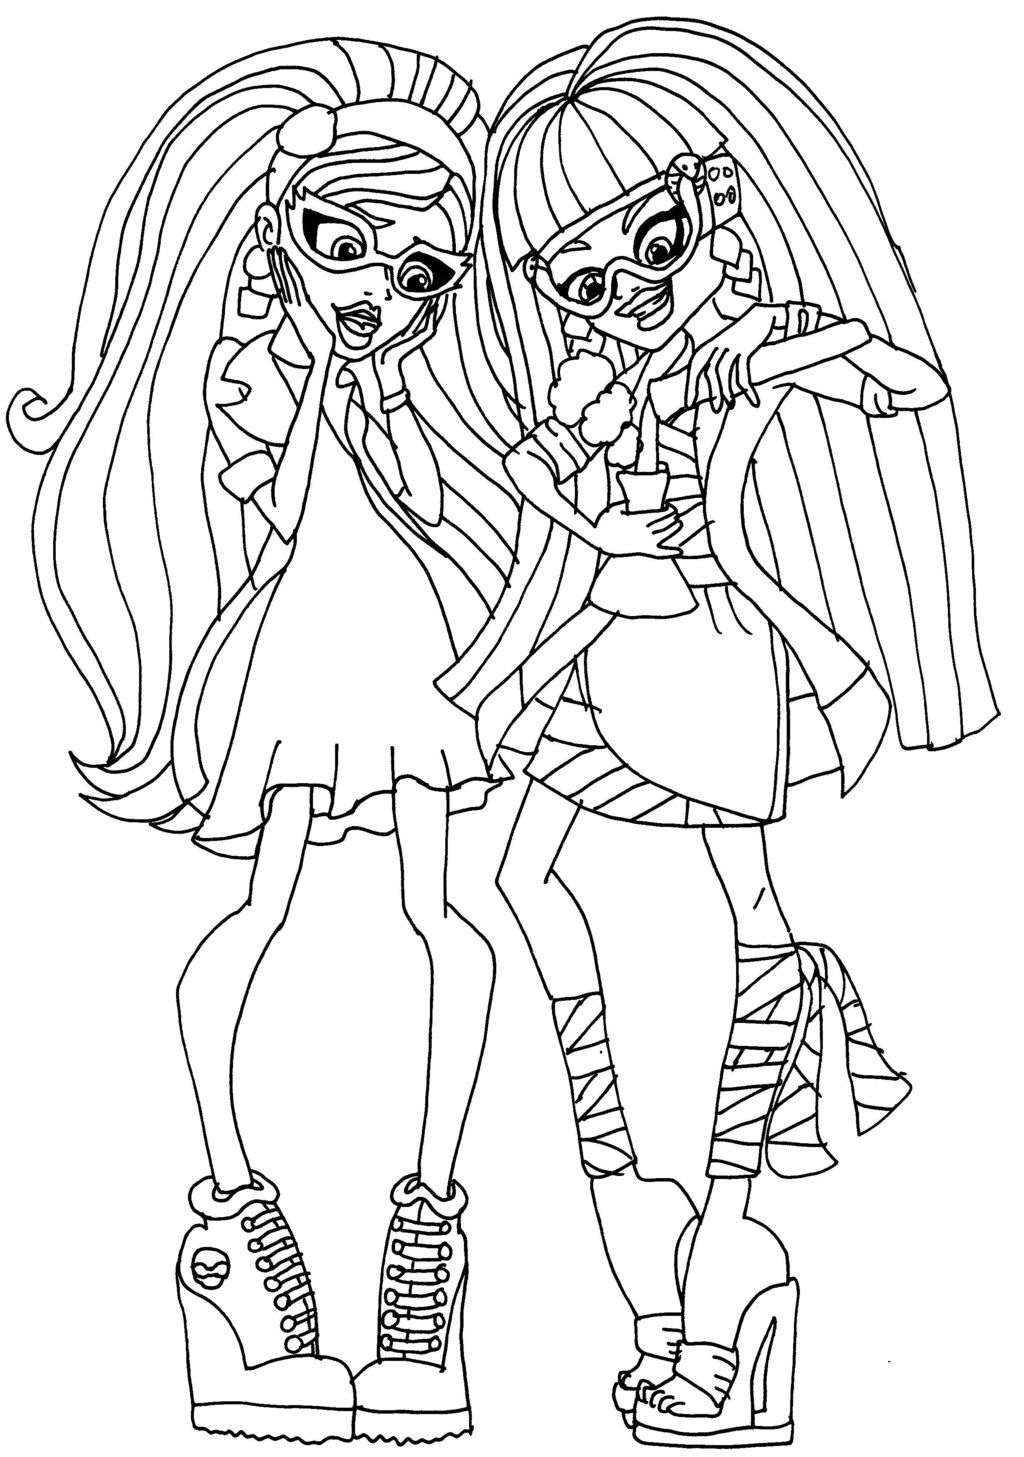 lab partners cleo and ghoulia by elfkena @ DeviantArt | coloring ...